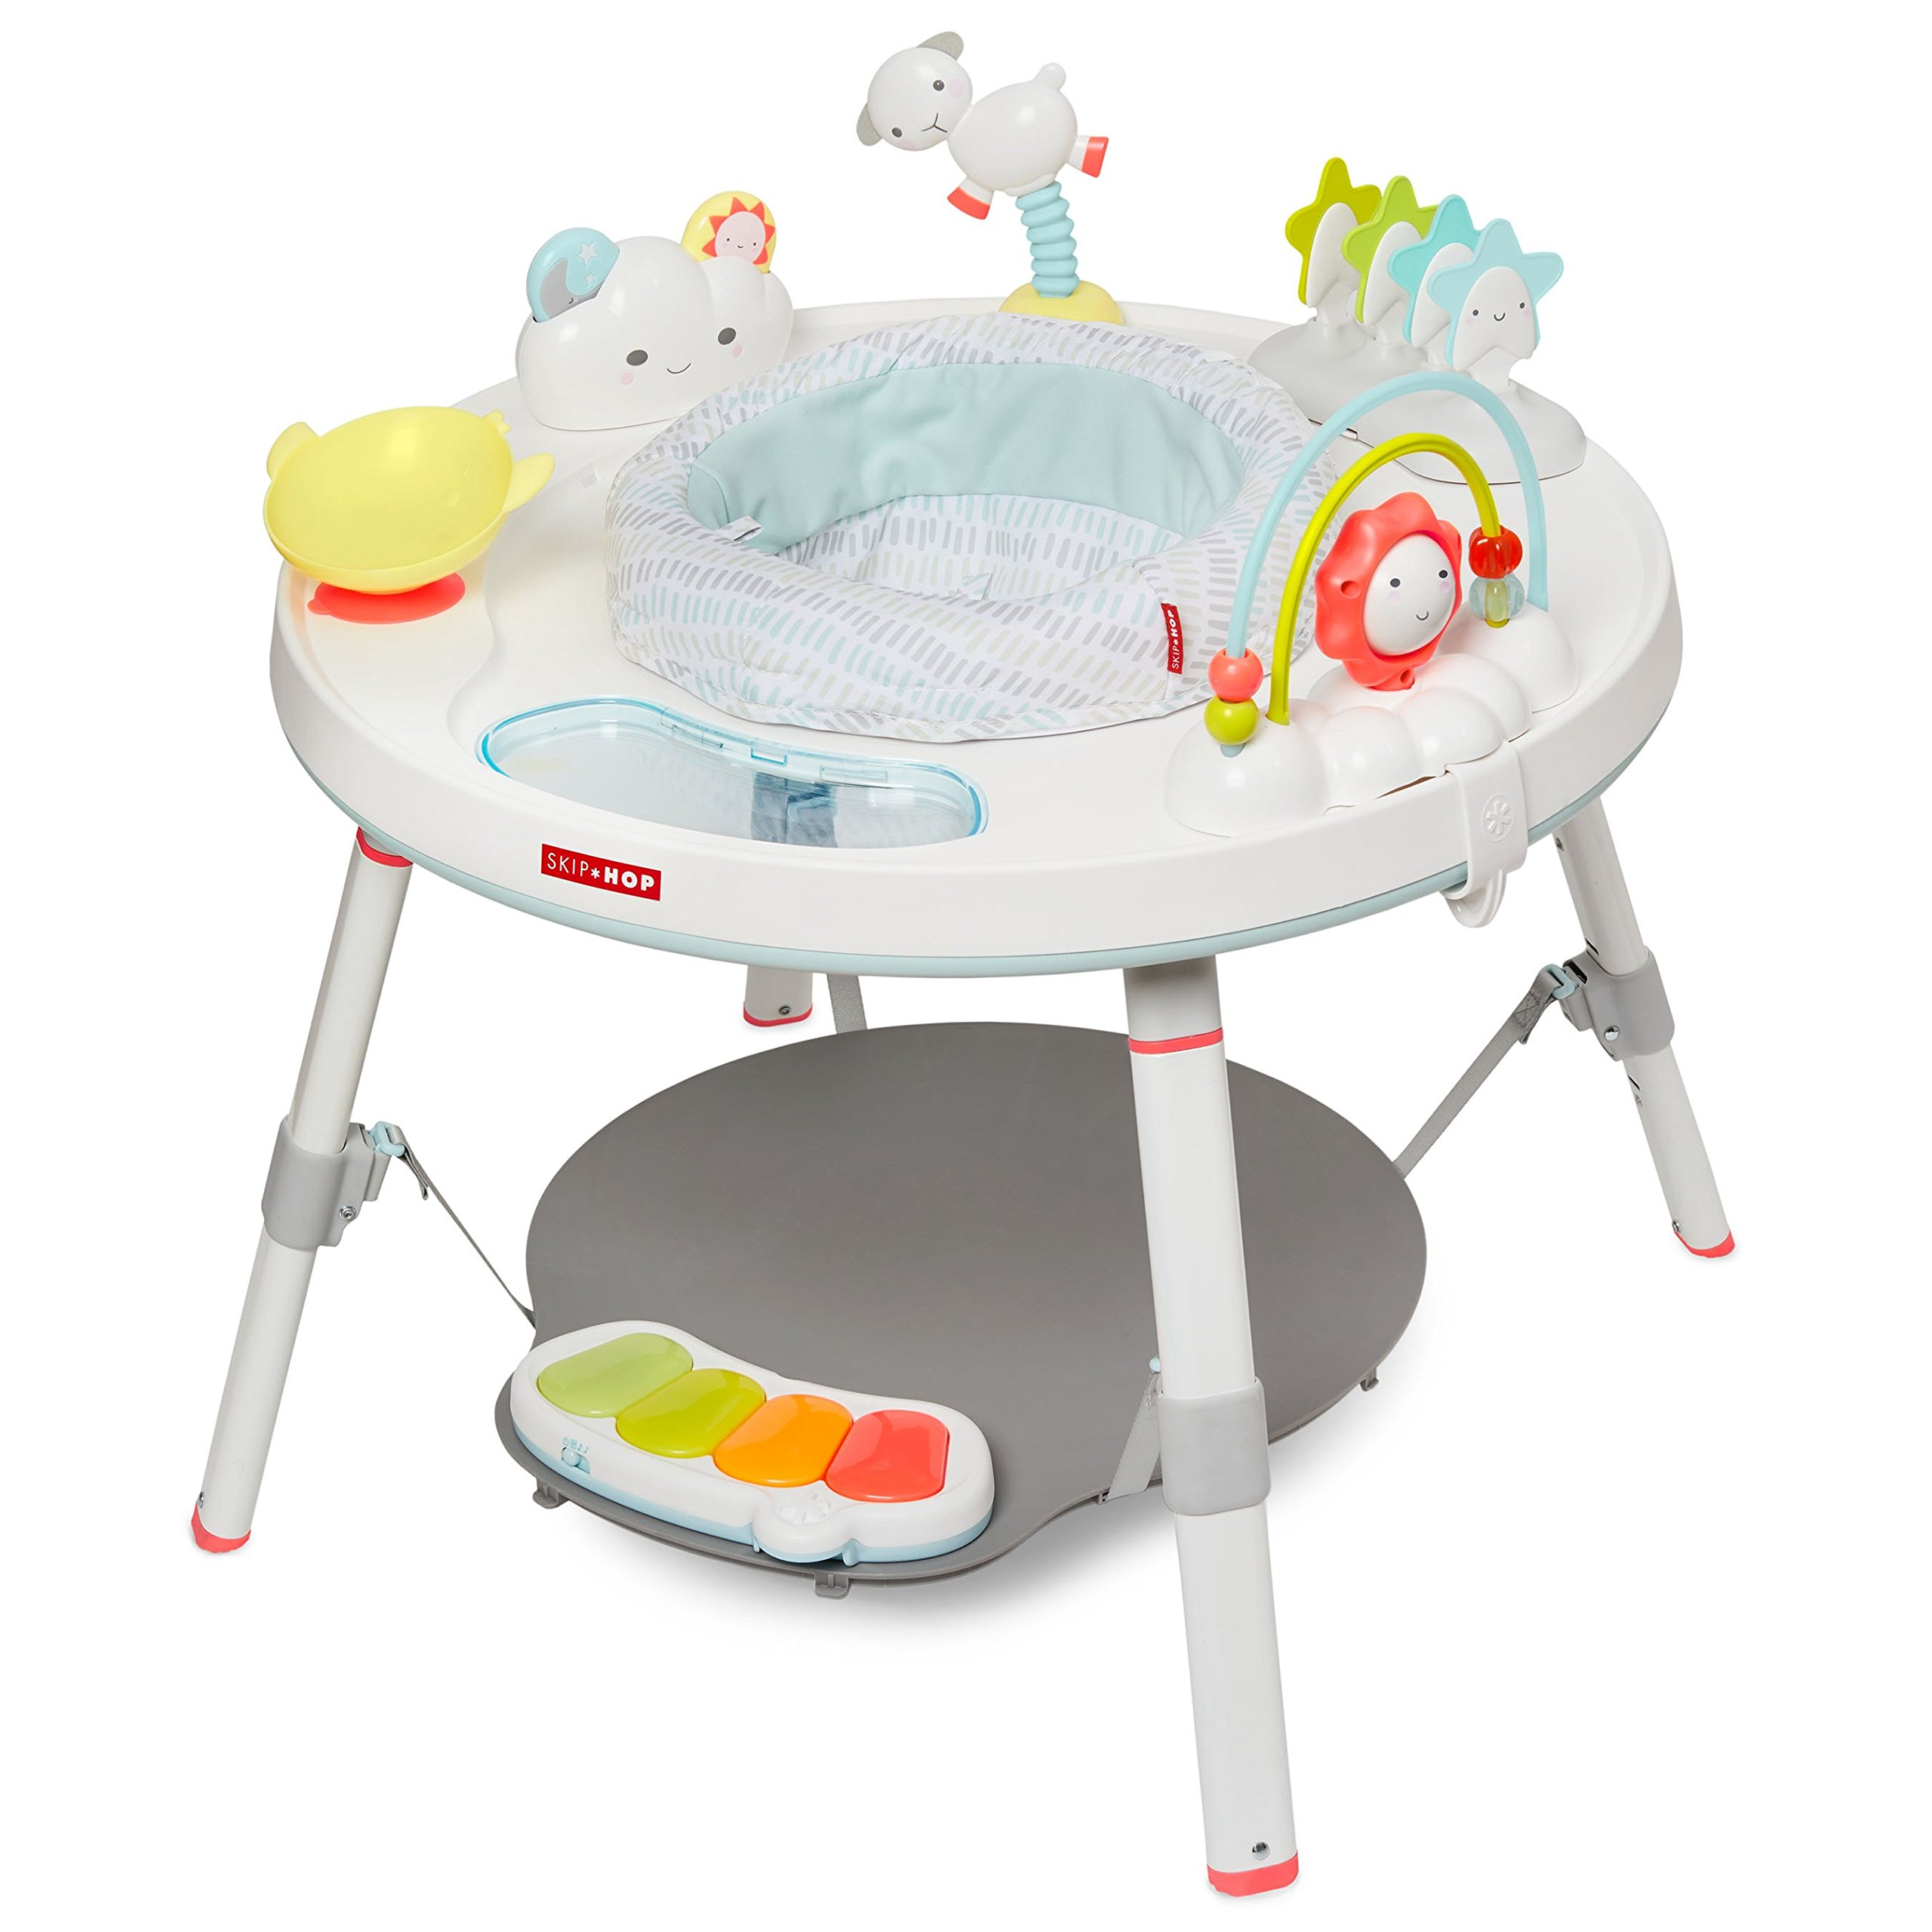 Skip Hop Silver Lining Cloud Baby's View 3-Stage Activity Center, Multi, 4 Months